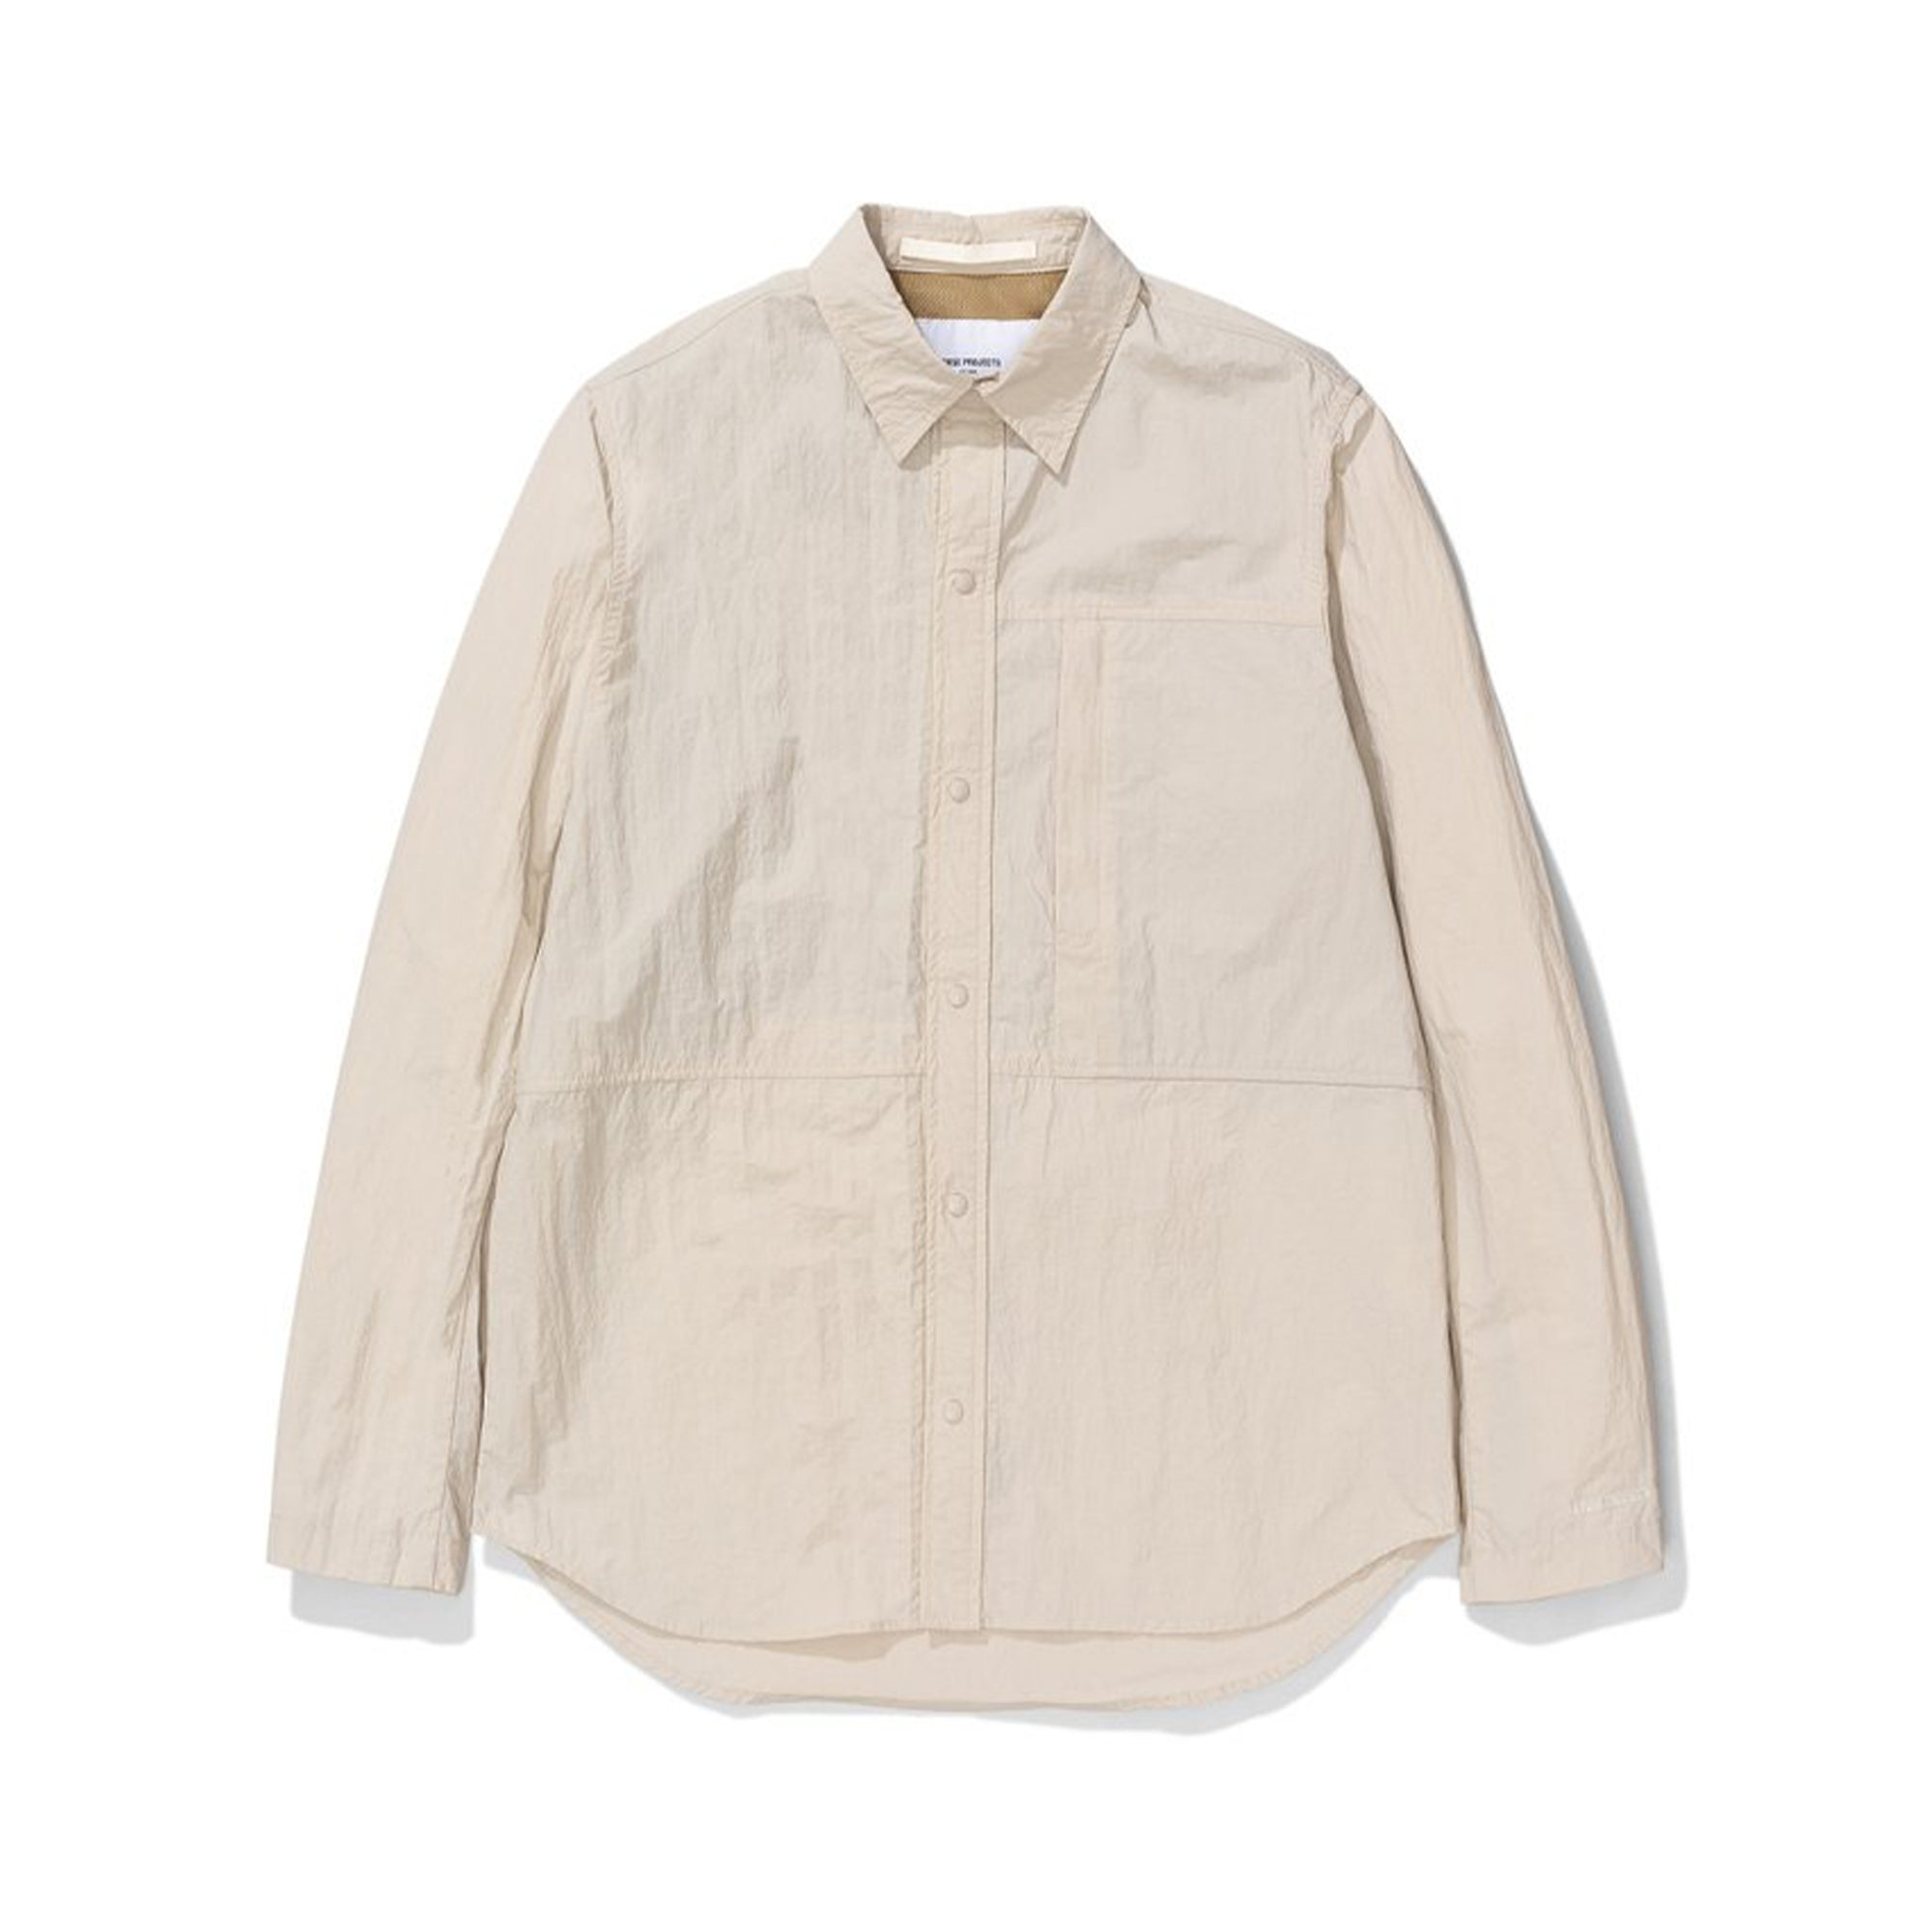 Norse Projects Thorsten Packable: Oatmeal - The Union Project